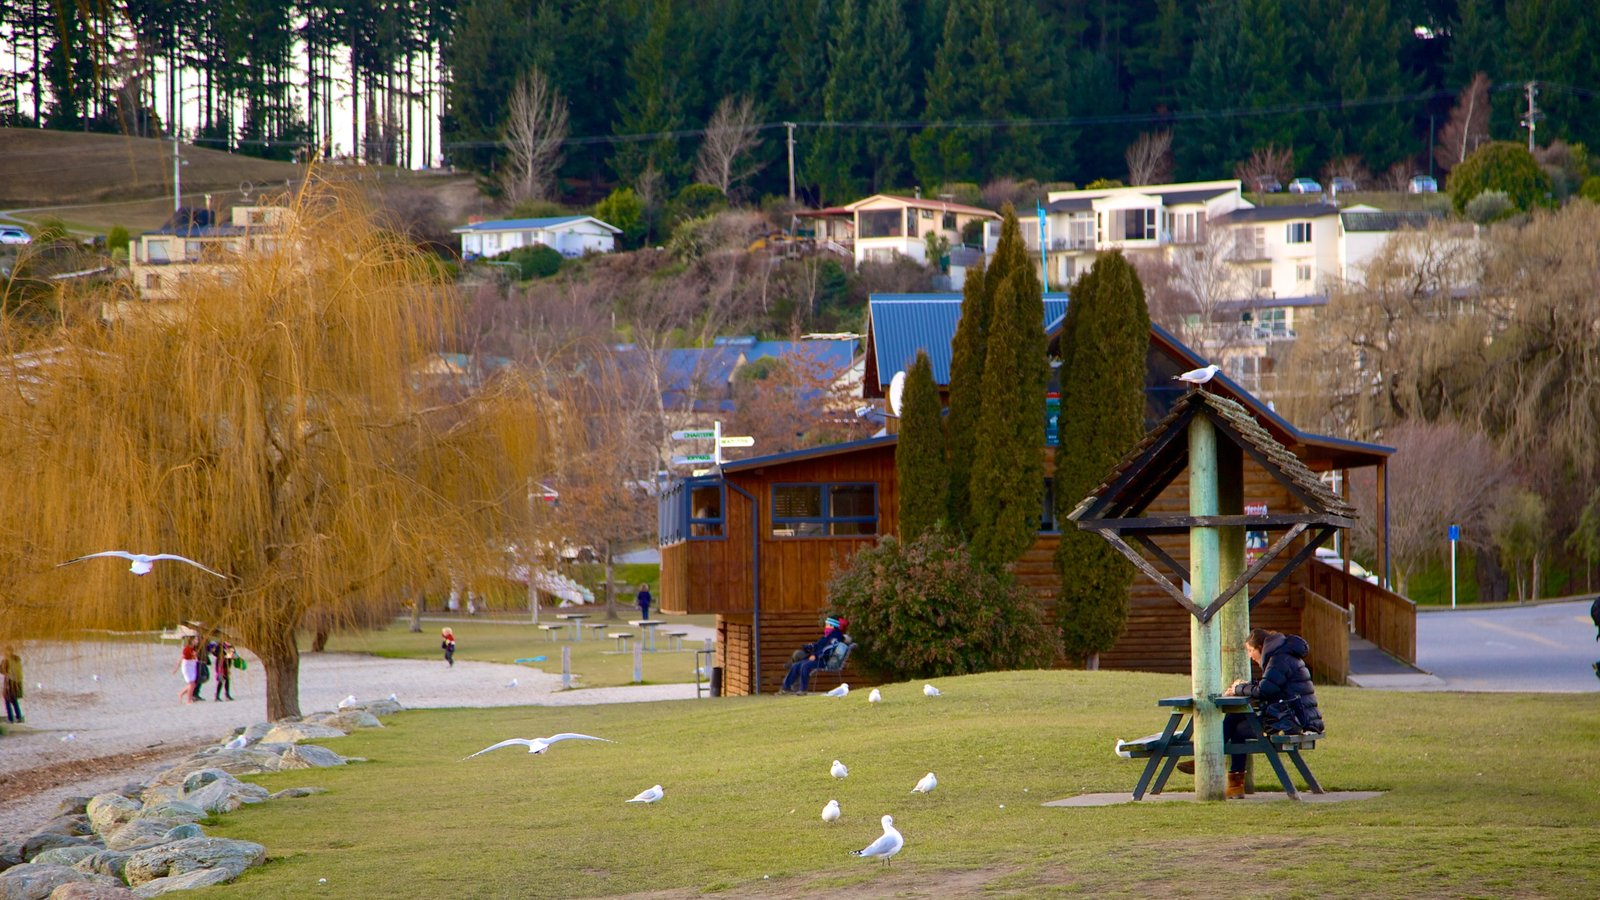 Gardens & Parks Pictures: View Images of Wanaka